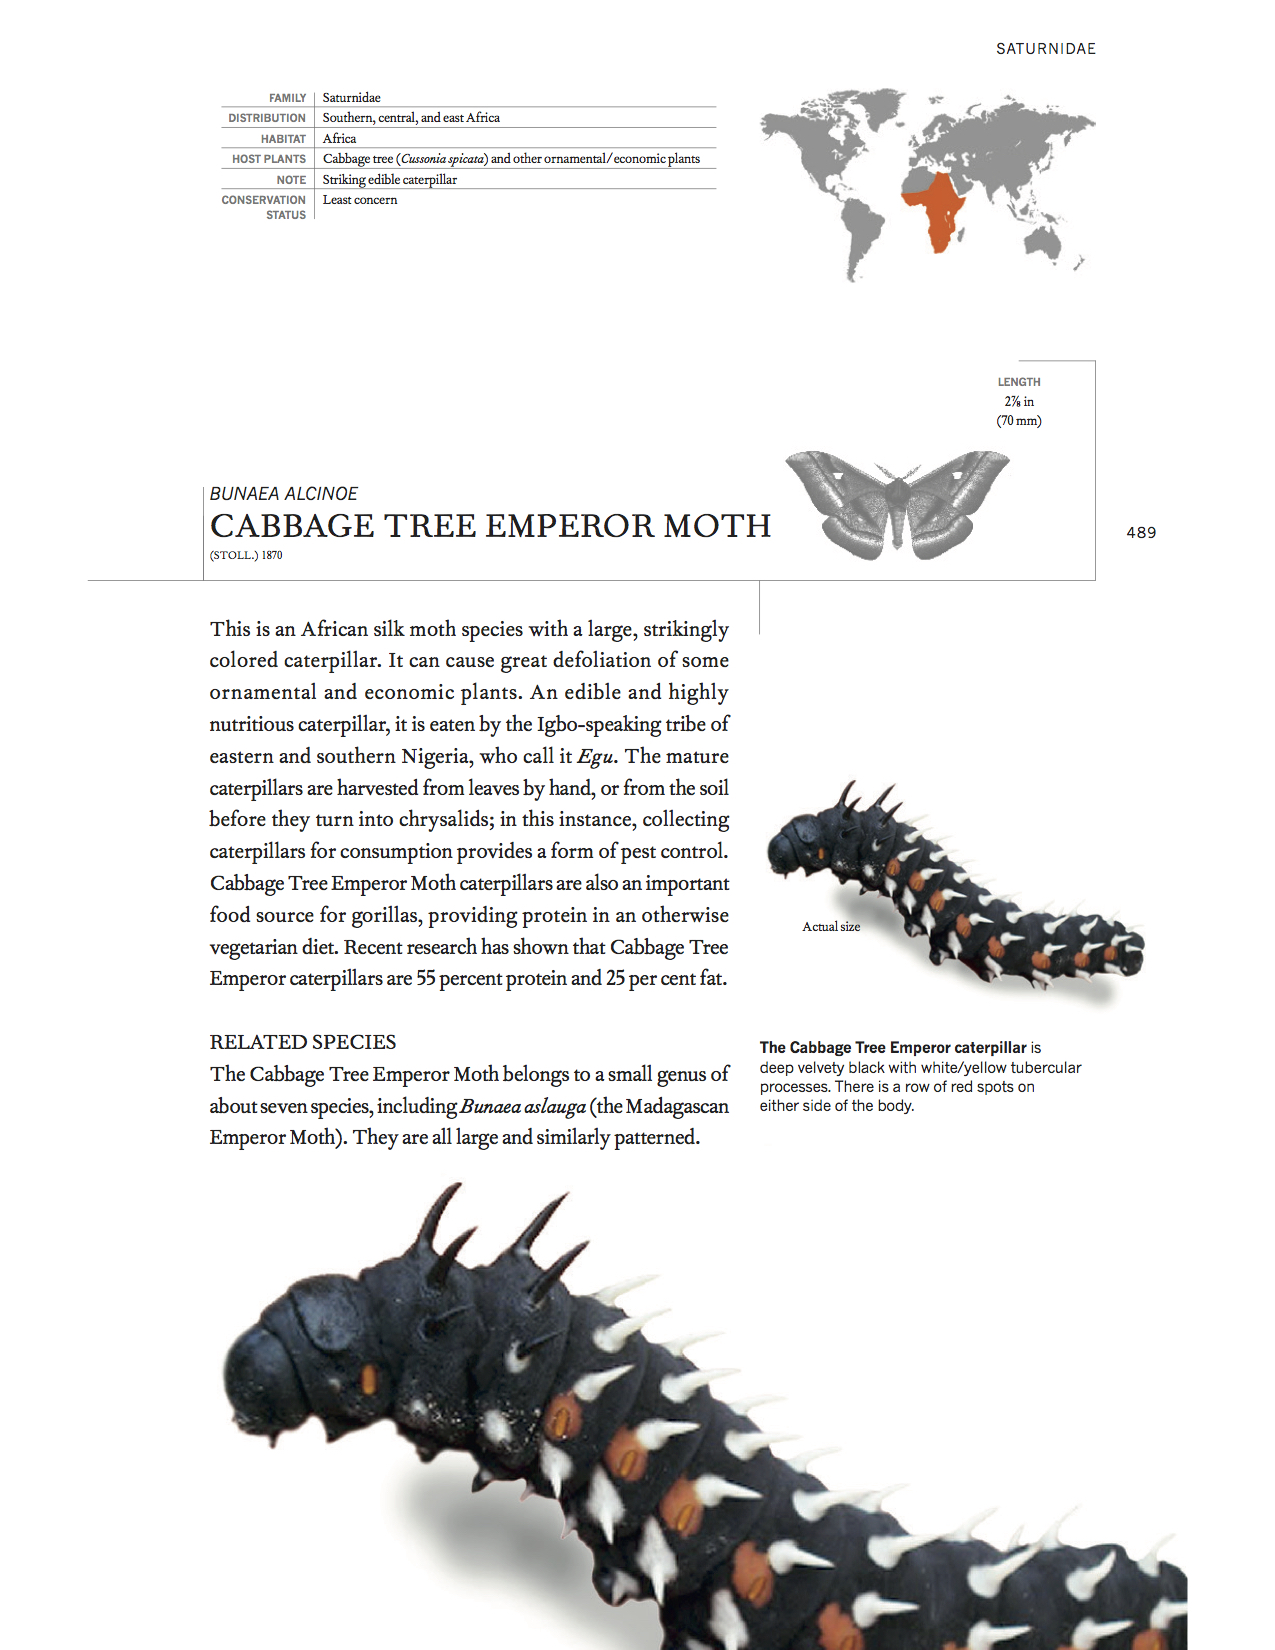 Sample page giving a description of the Cabbage Tree Emperor Moth, with pictures of the caterpillar.